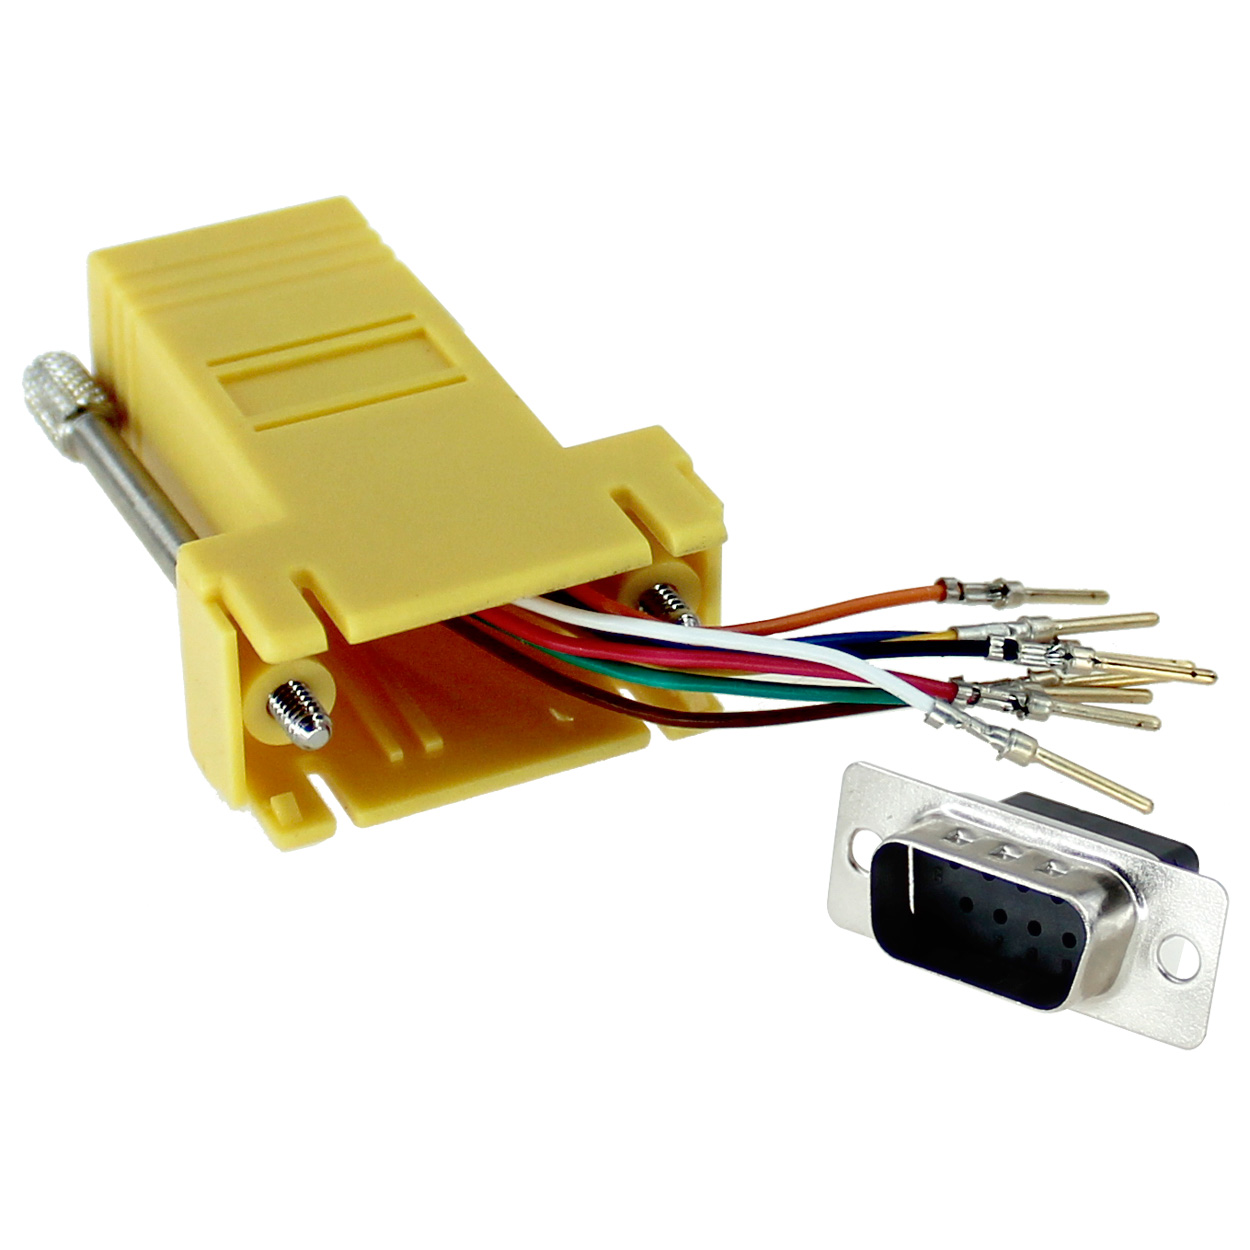 RJ45 to DB9 Male Modular Adapter - Yellow